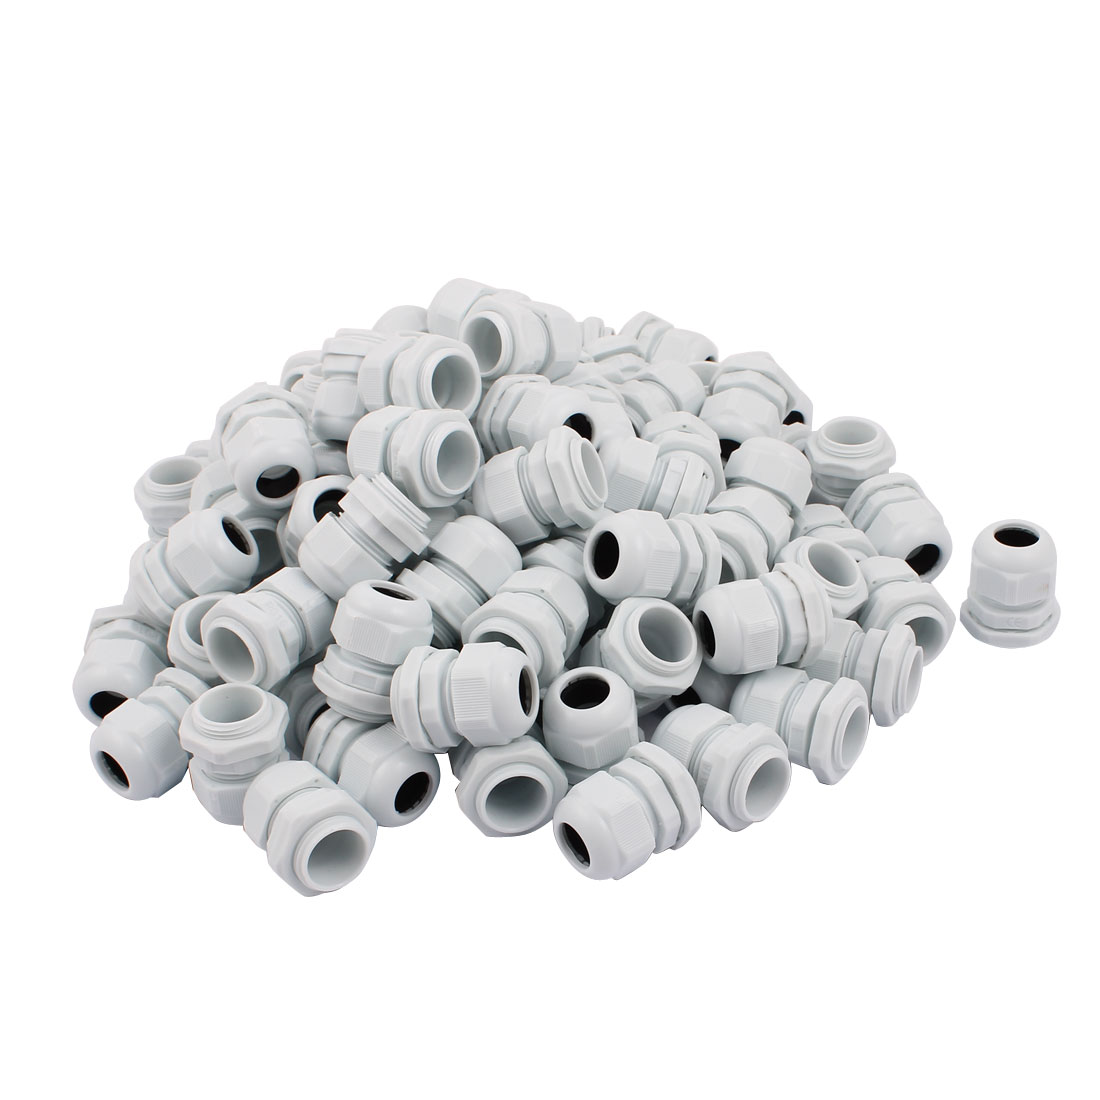 White Plastic PG16 Water Resistance Cable Gland Fixing Connector Joints Fastener 100 PCS